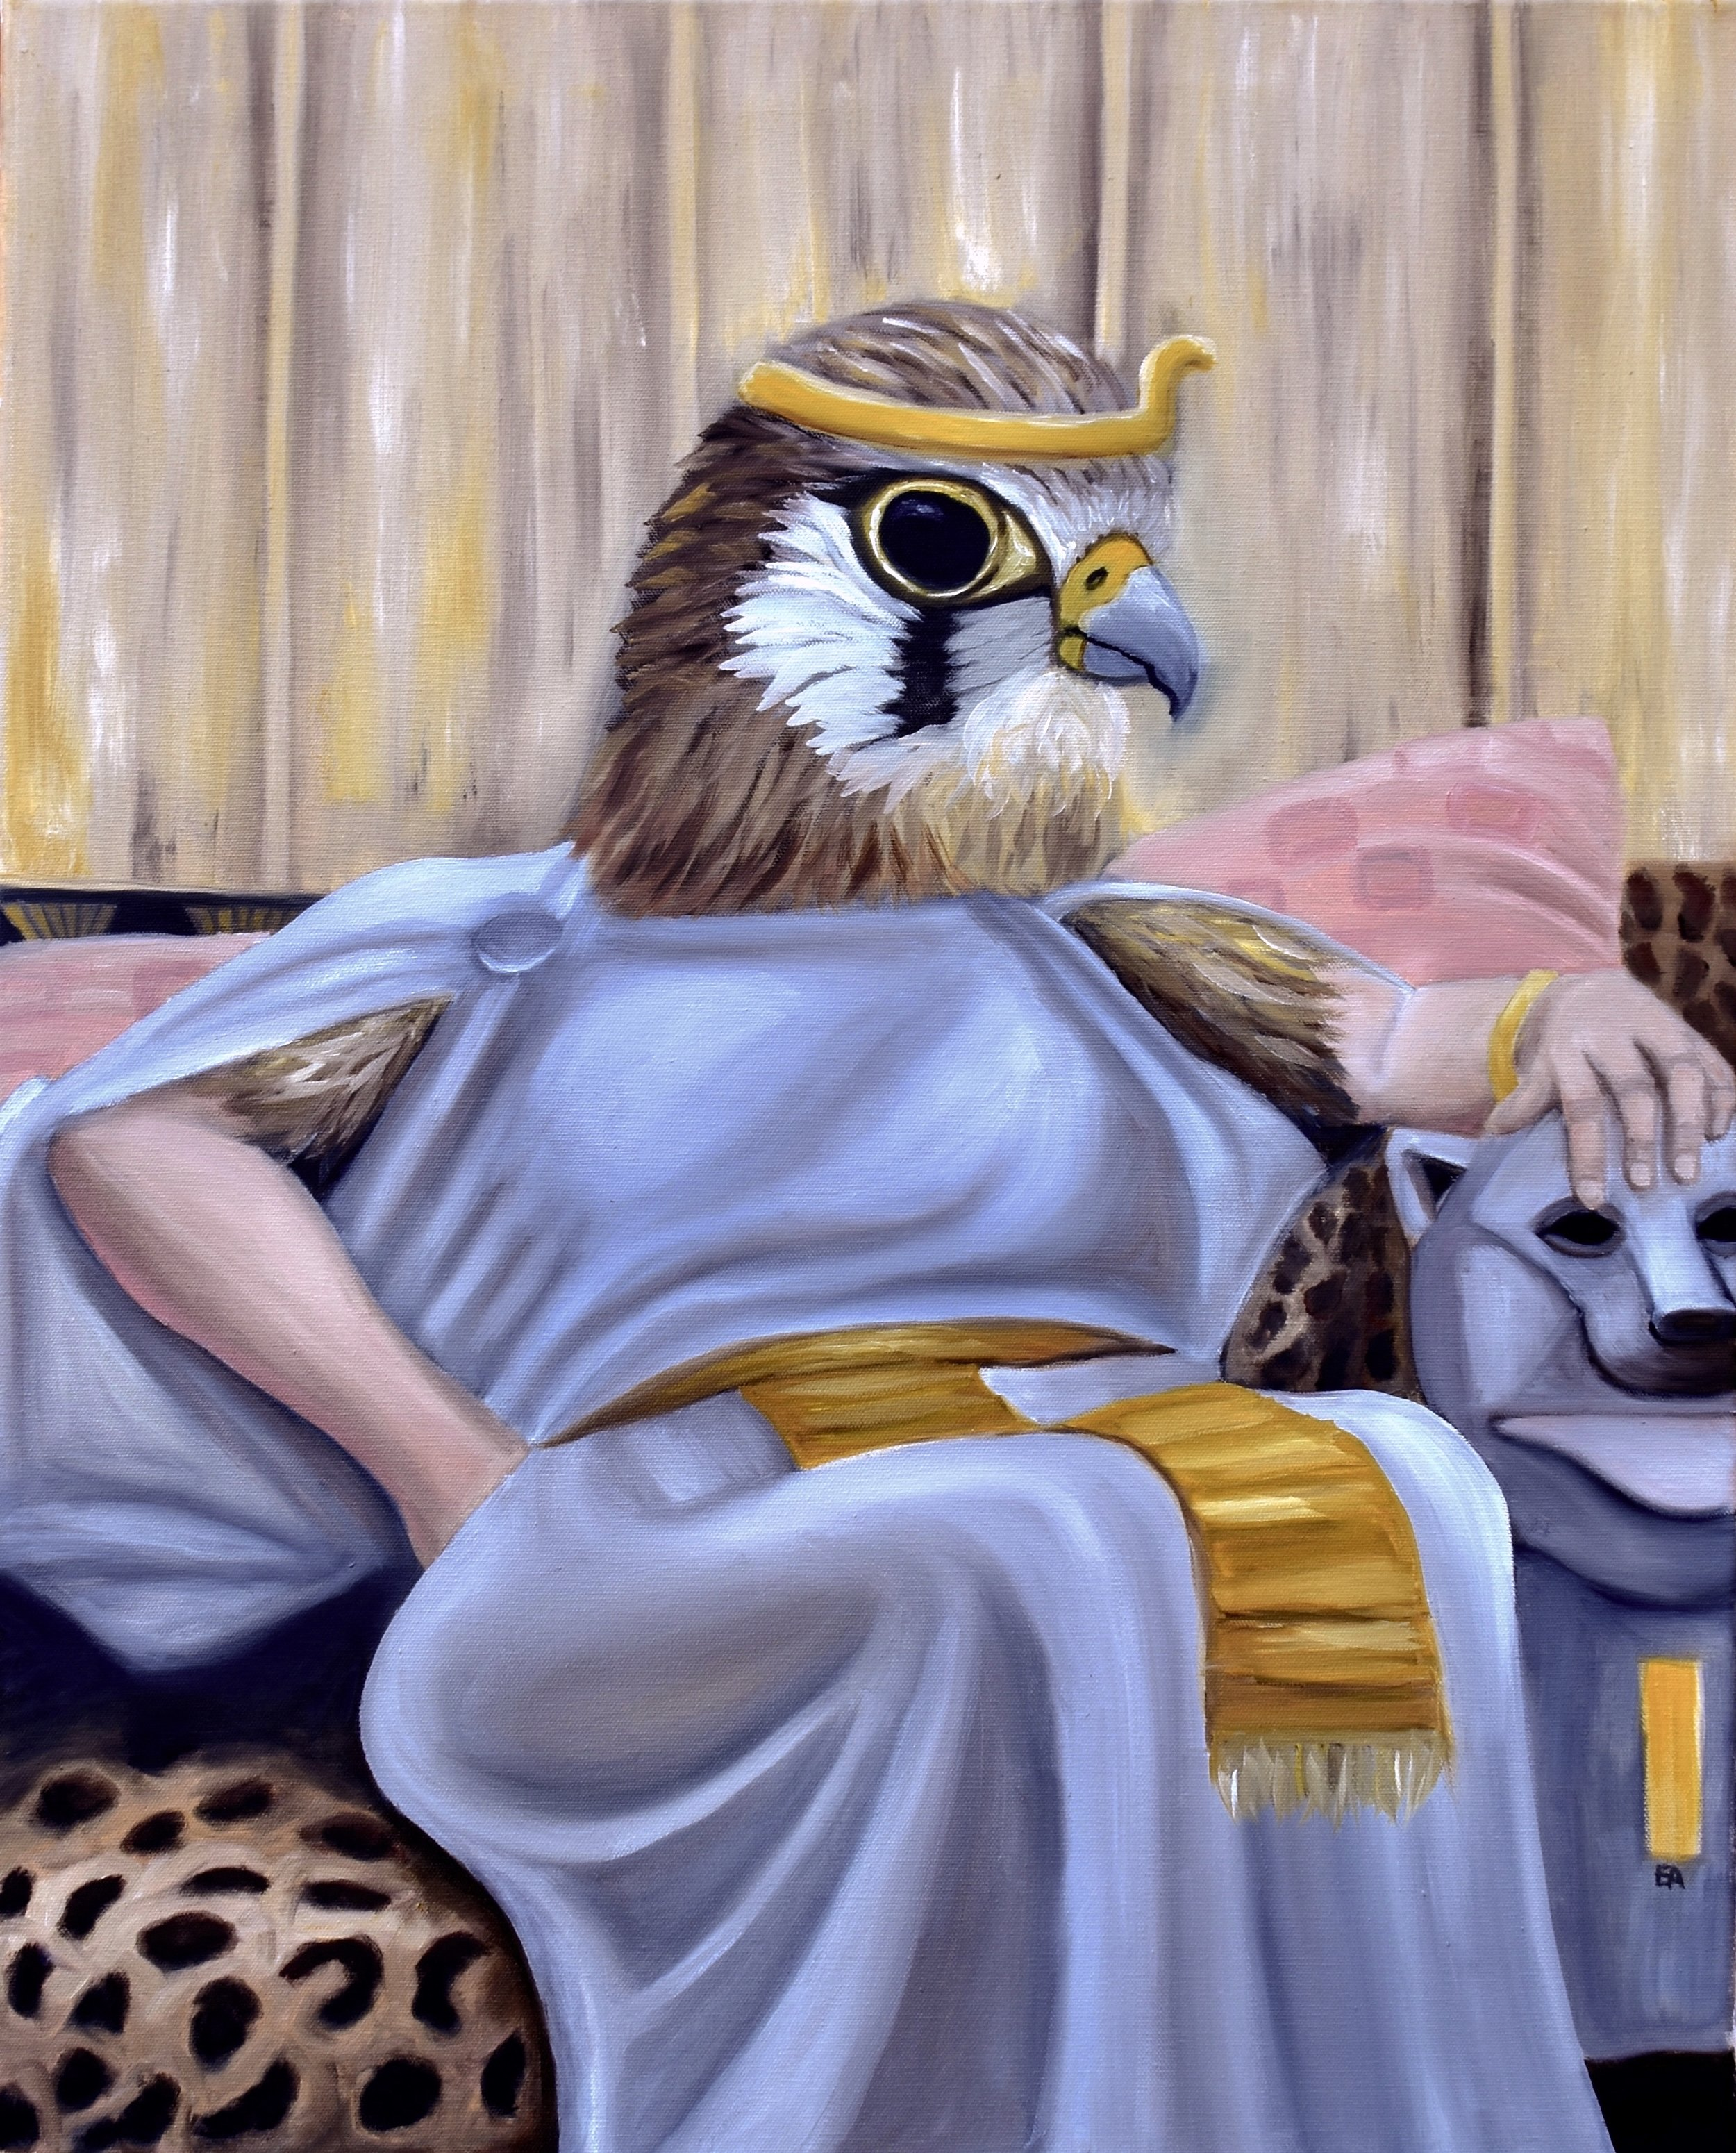 """The Great Lady of Perfection"" 24x30 Oil on Canvas.  The common kestrel was a bird revered by the Egyptians. The small falcon represented their major god Horus and was said to protect their royal sons and daughters. The bird was bred by the Egyptian people. Fed to death with little mice and then mummified and sacrificed to the gods. The falcon appears in the hieroglyphics that spell out Cleopatra's name. Protection for ""the great lady of perfection.""  Painting inspired by: ""Cleopatra"" John Williams Waterhouse 1888"